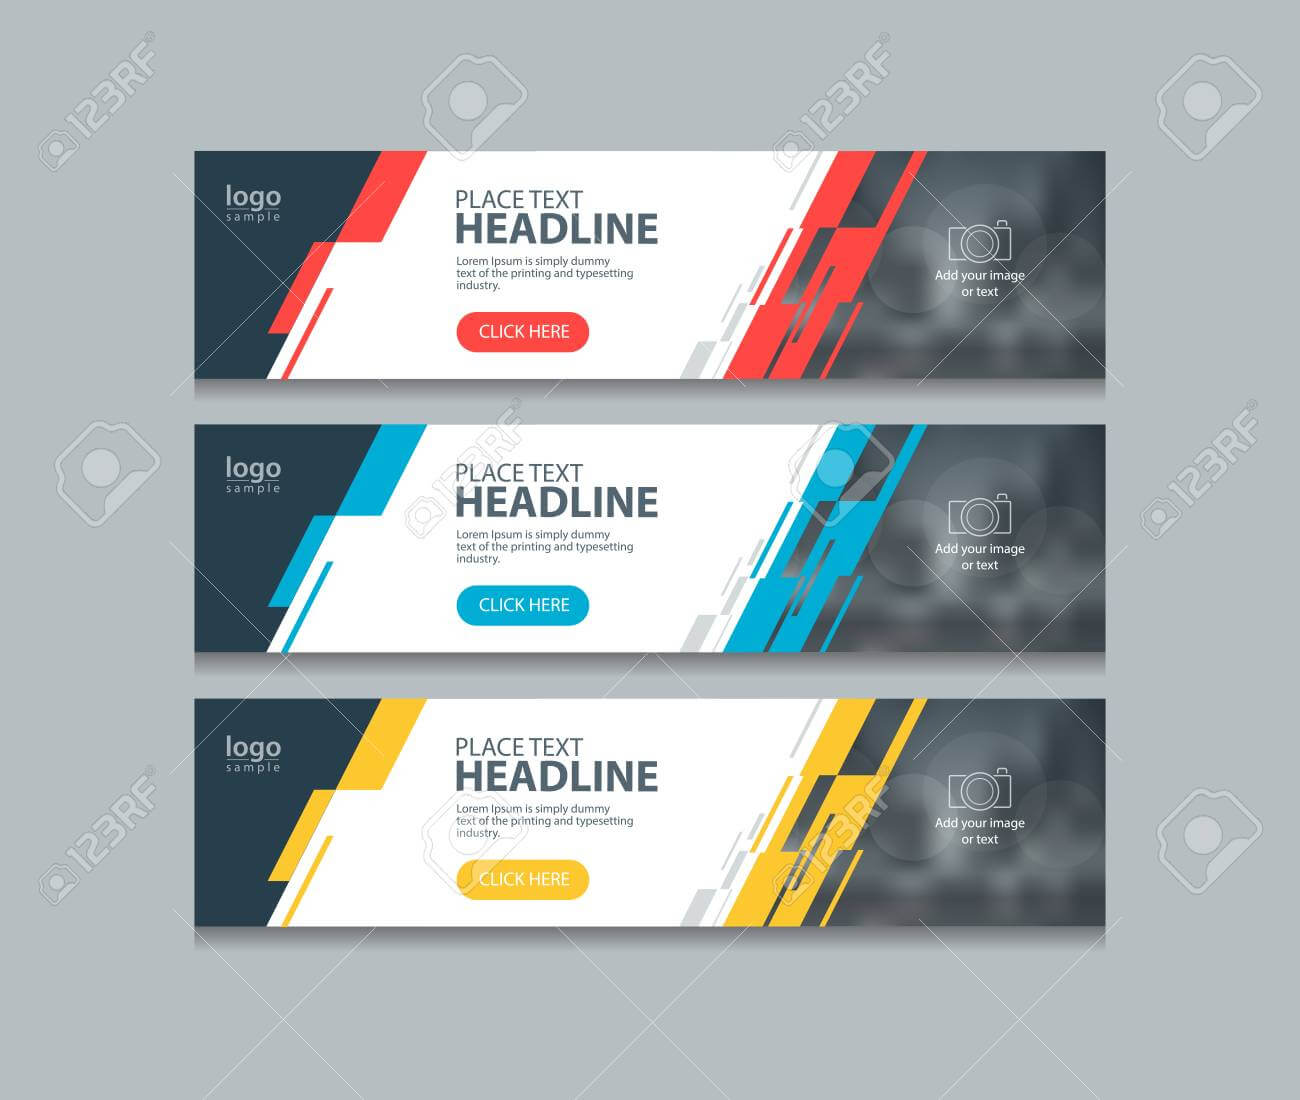 Abstract Horizontal Web Banner Design Template Backgrounds Intended For Website Banner Design Templates